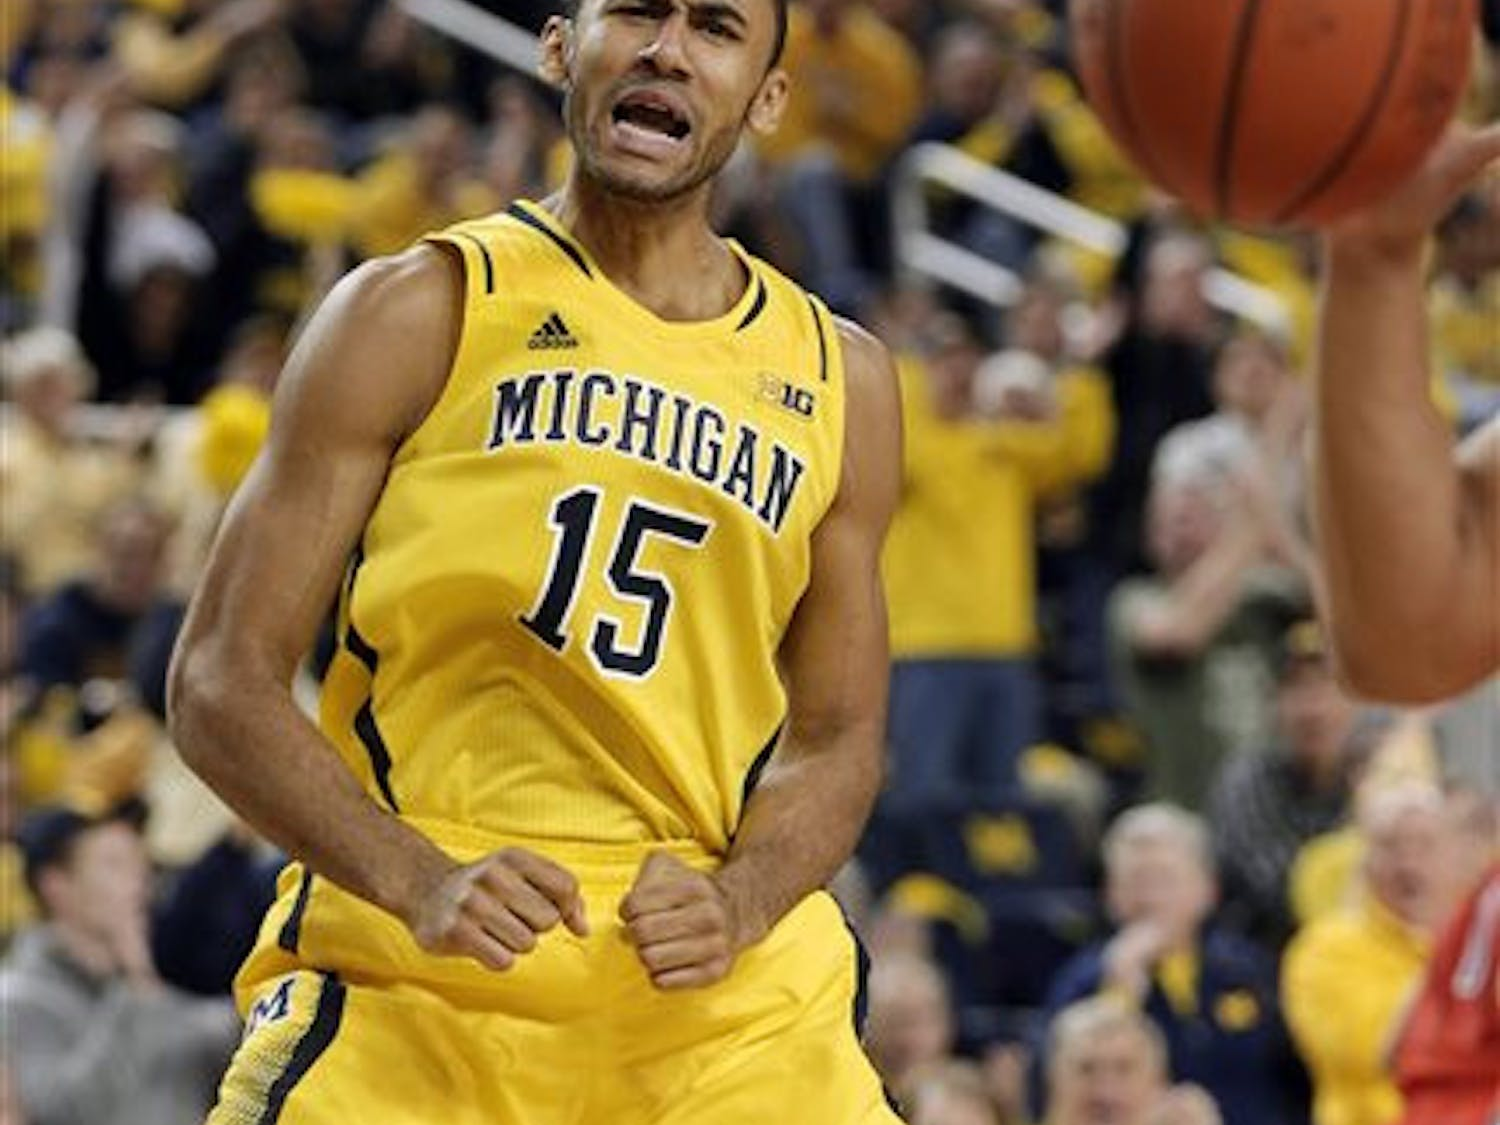 Michigan forward Jon Horford reacts after making a basket during a game against Arizona in Ann Arbor, Mich., on Dec. 14.